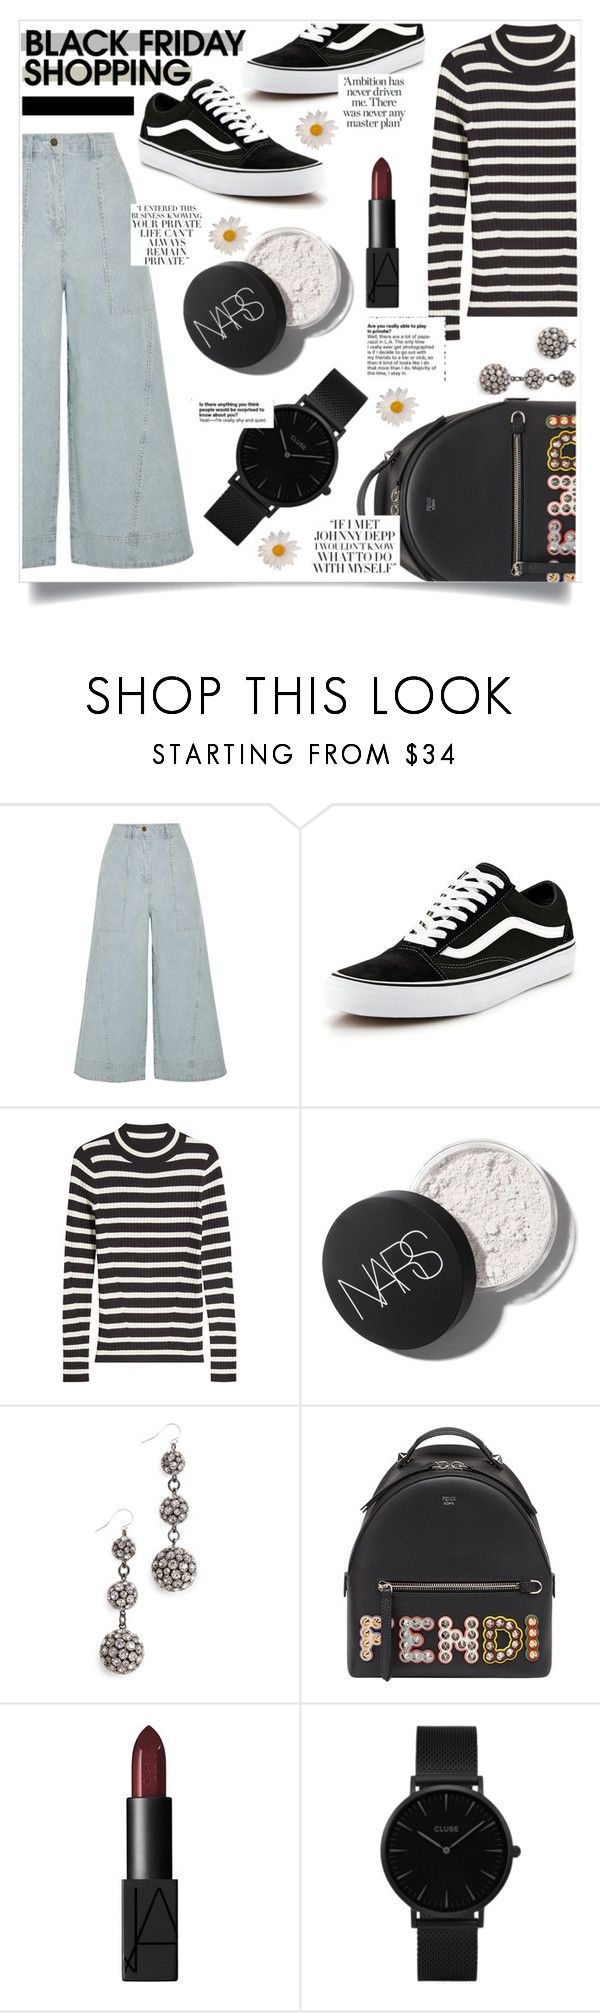 """Black Friday Shopping"" by ifip ❤ liked on Polyvore featuring Ulla Johnson, Vans, Steffen Schraut, Lulu Frost, Fendi and CLUSE"